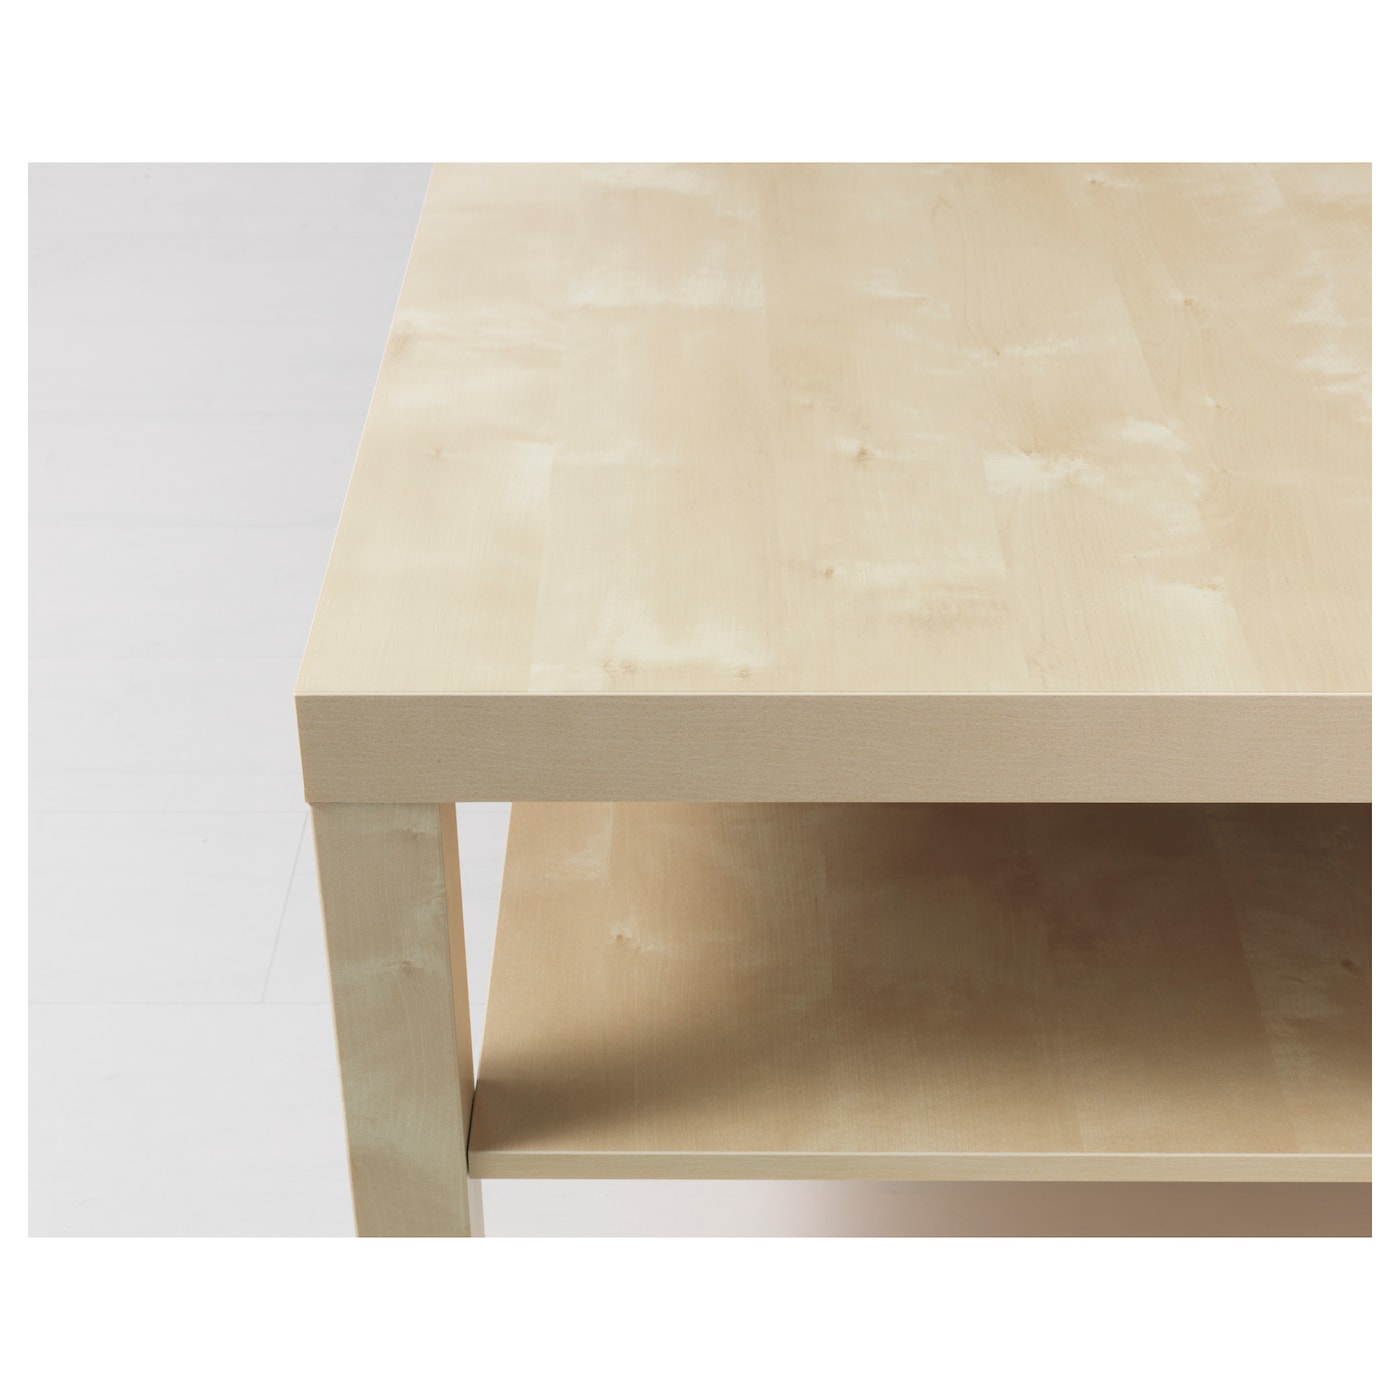 Lack coffee table birch effect 118x78 cm ikea - Table basse chez ikea ...